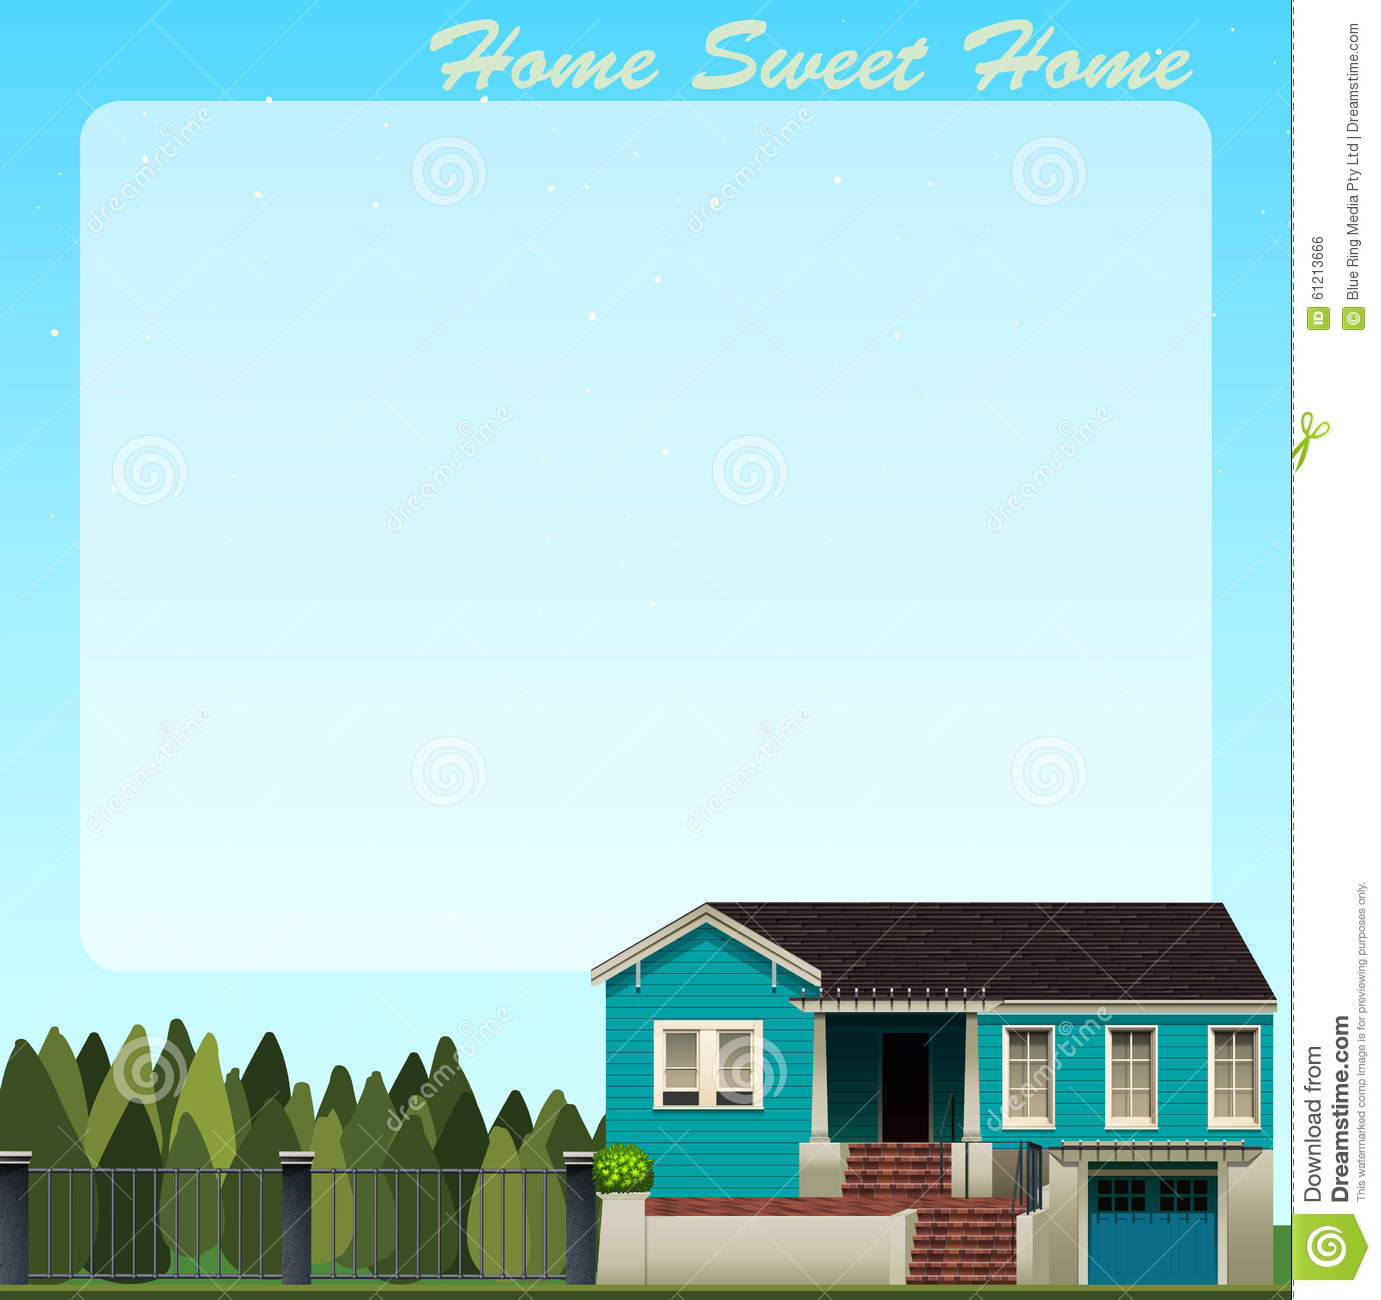 Border Design With Blue House Stock Vector Image 61213666